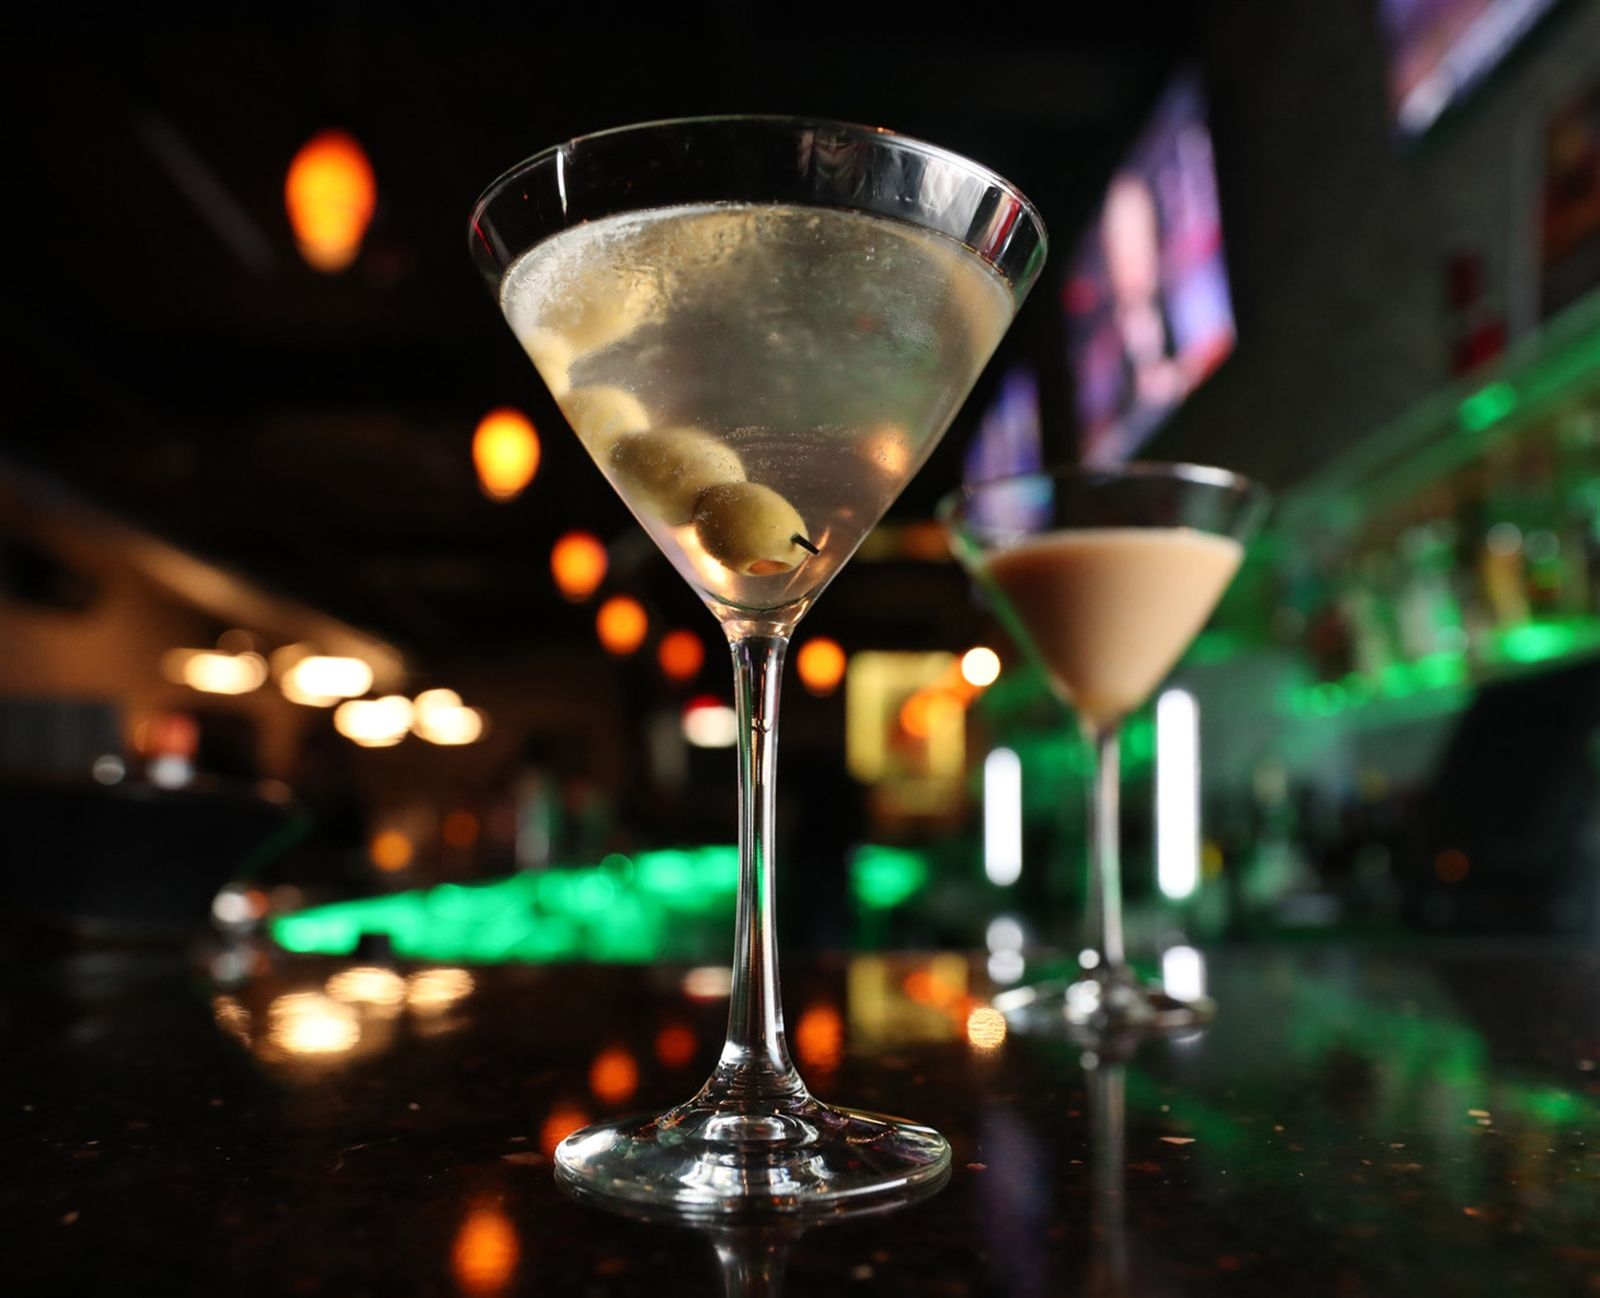 This is the Dirty D-Tour martini with vodka, dry vermouth and olive brine. Behind is The Exchange martini.